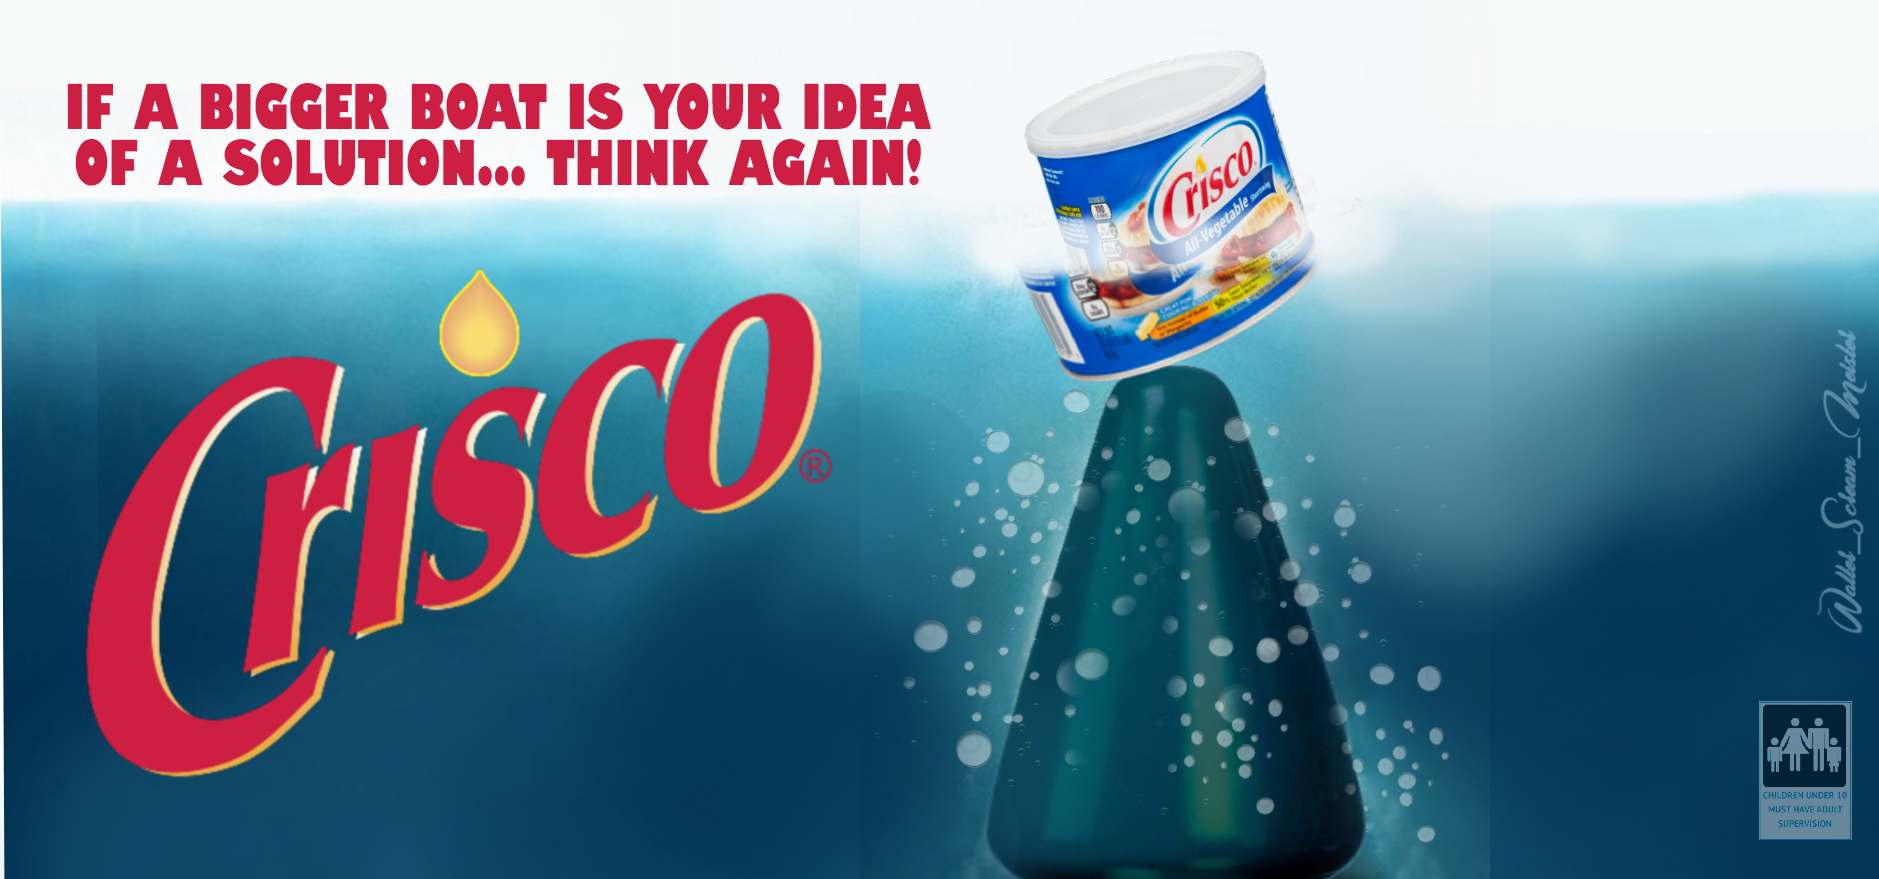 anal solution CRISCO final